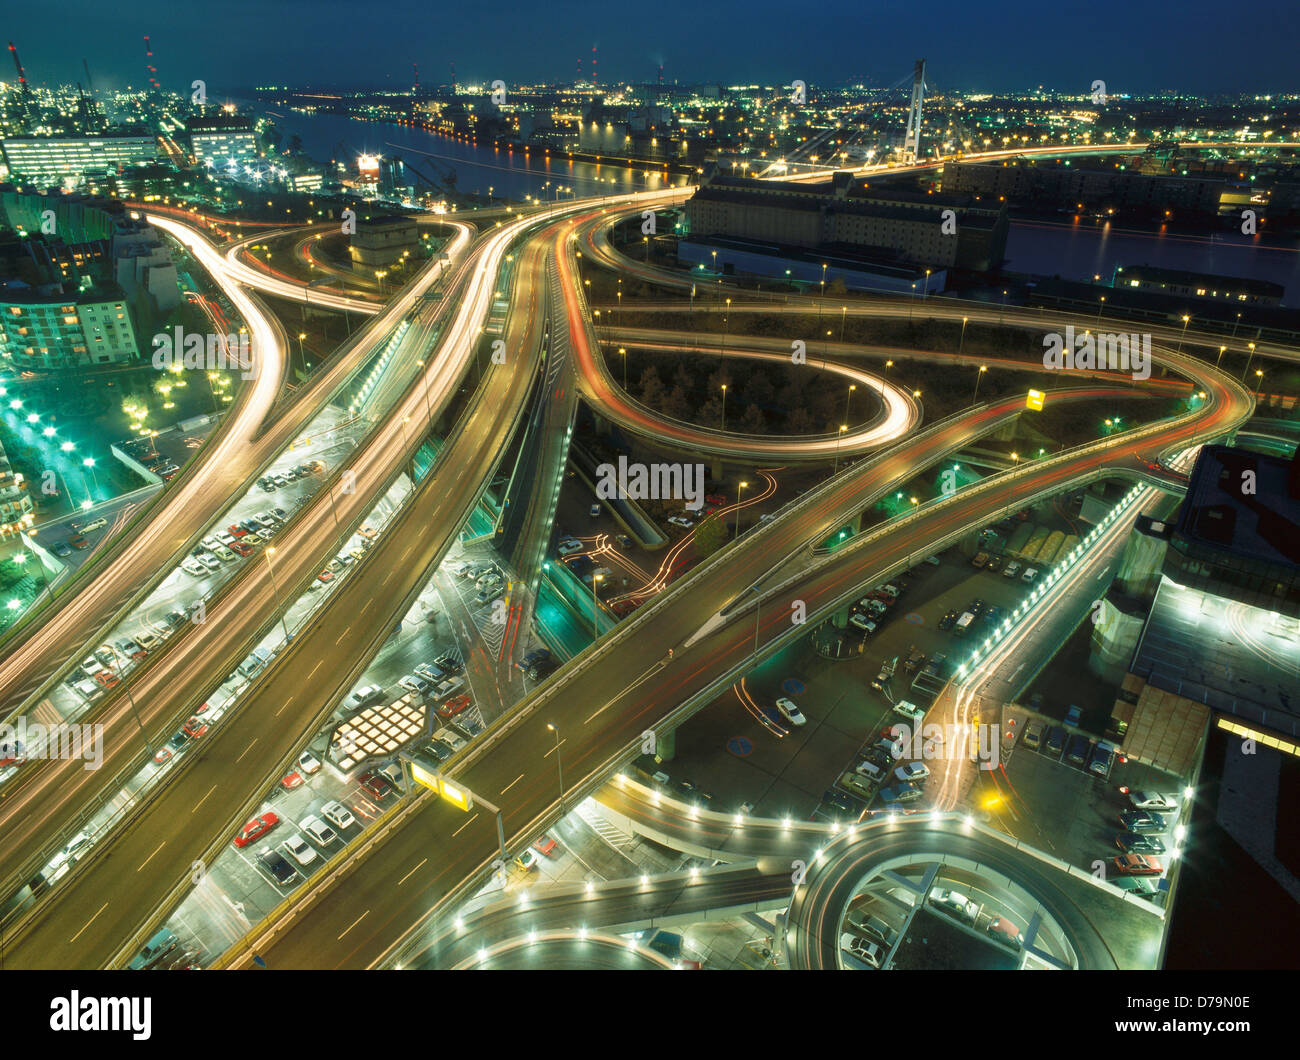 Germany Ludwigshafen Main roads in city at night Stock Photo, Royalty Free Image: 56147742 - Alamy